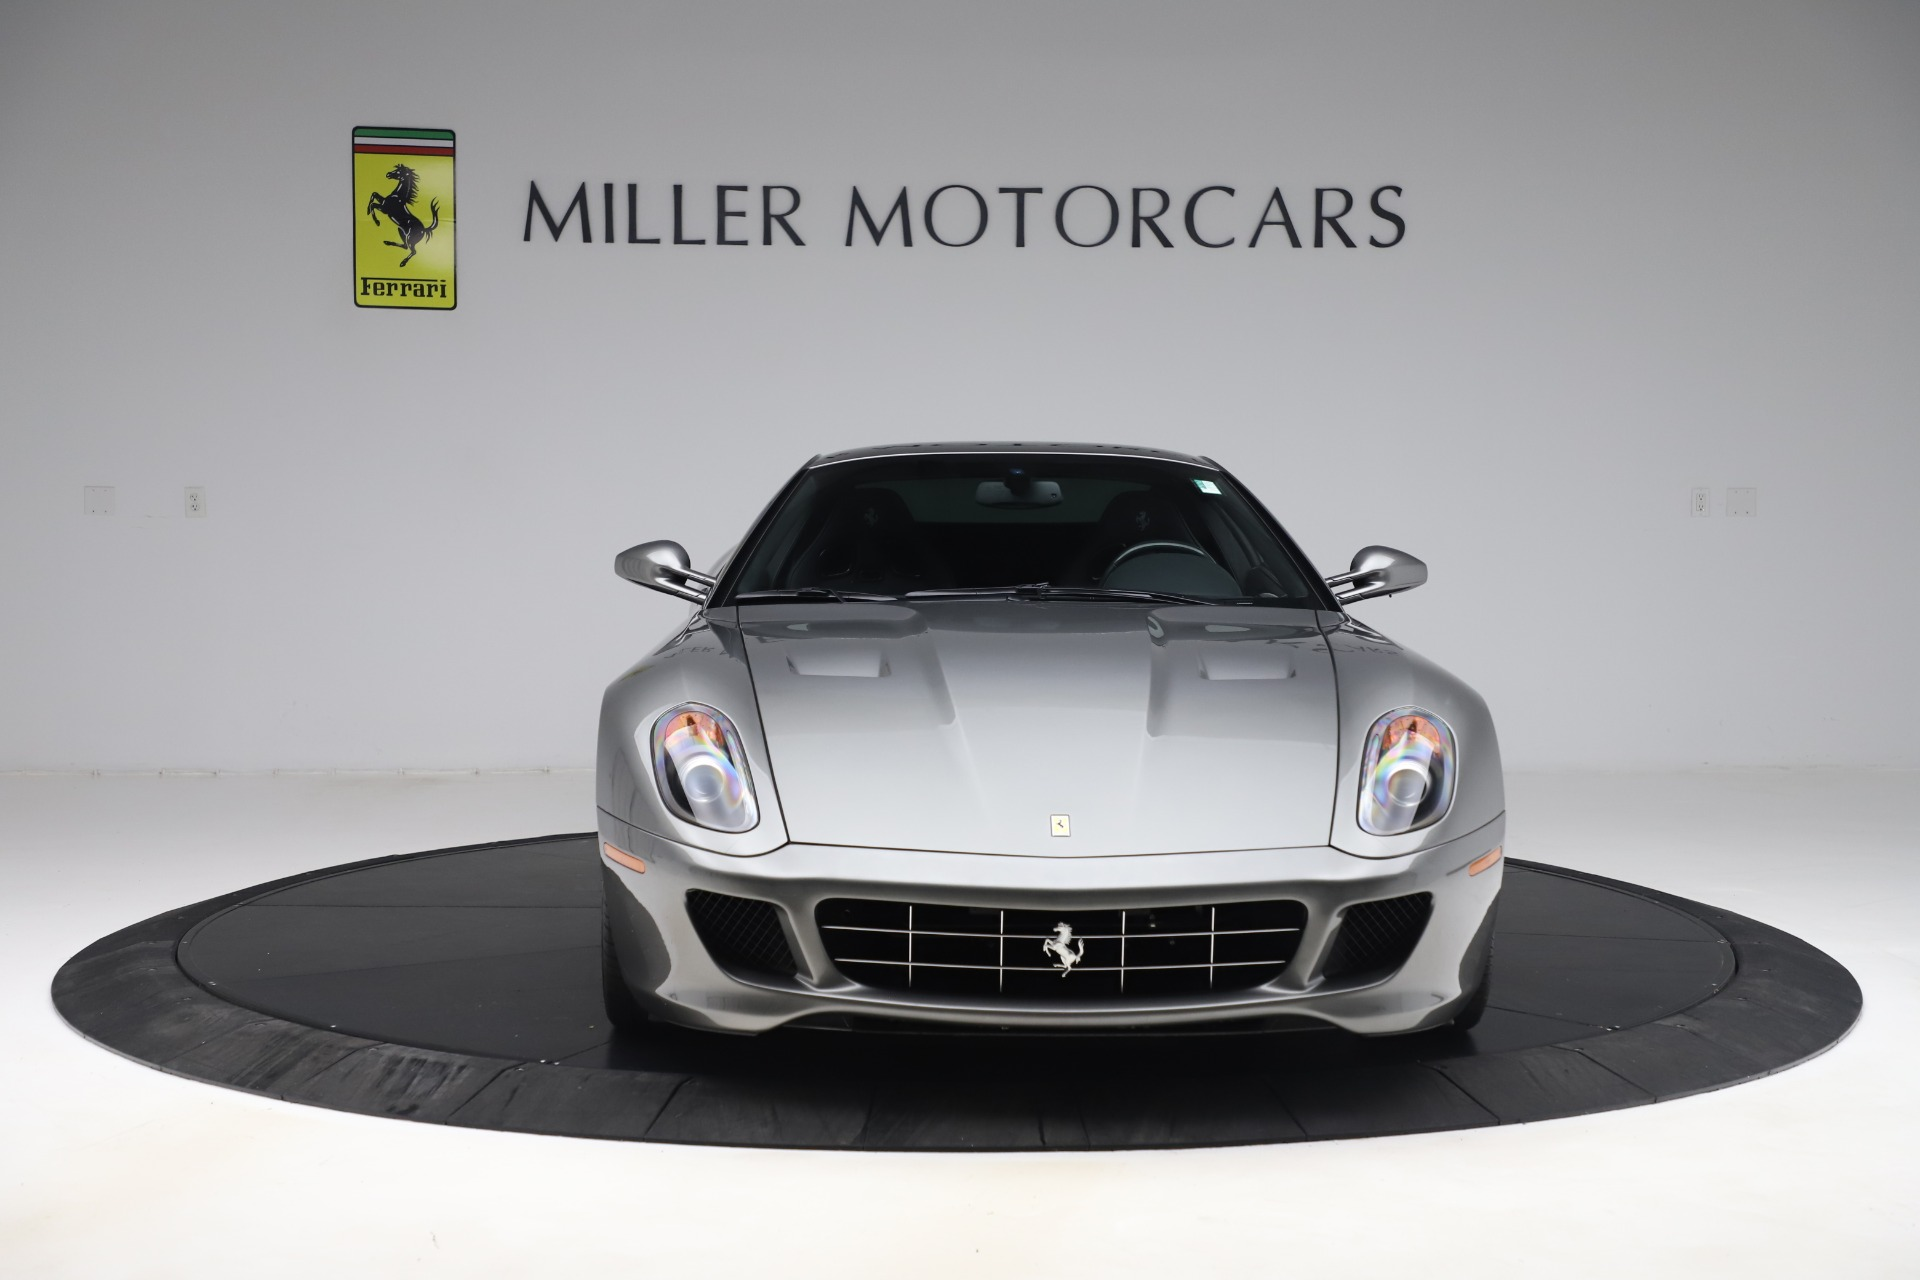 Used 2010 Ferrari 599 GTB Fiorano HGTE For Sale In Westport, CT 3544_p12